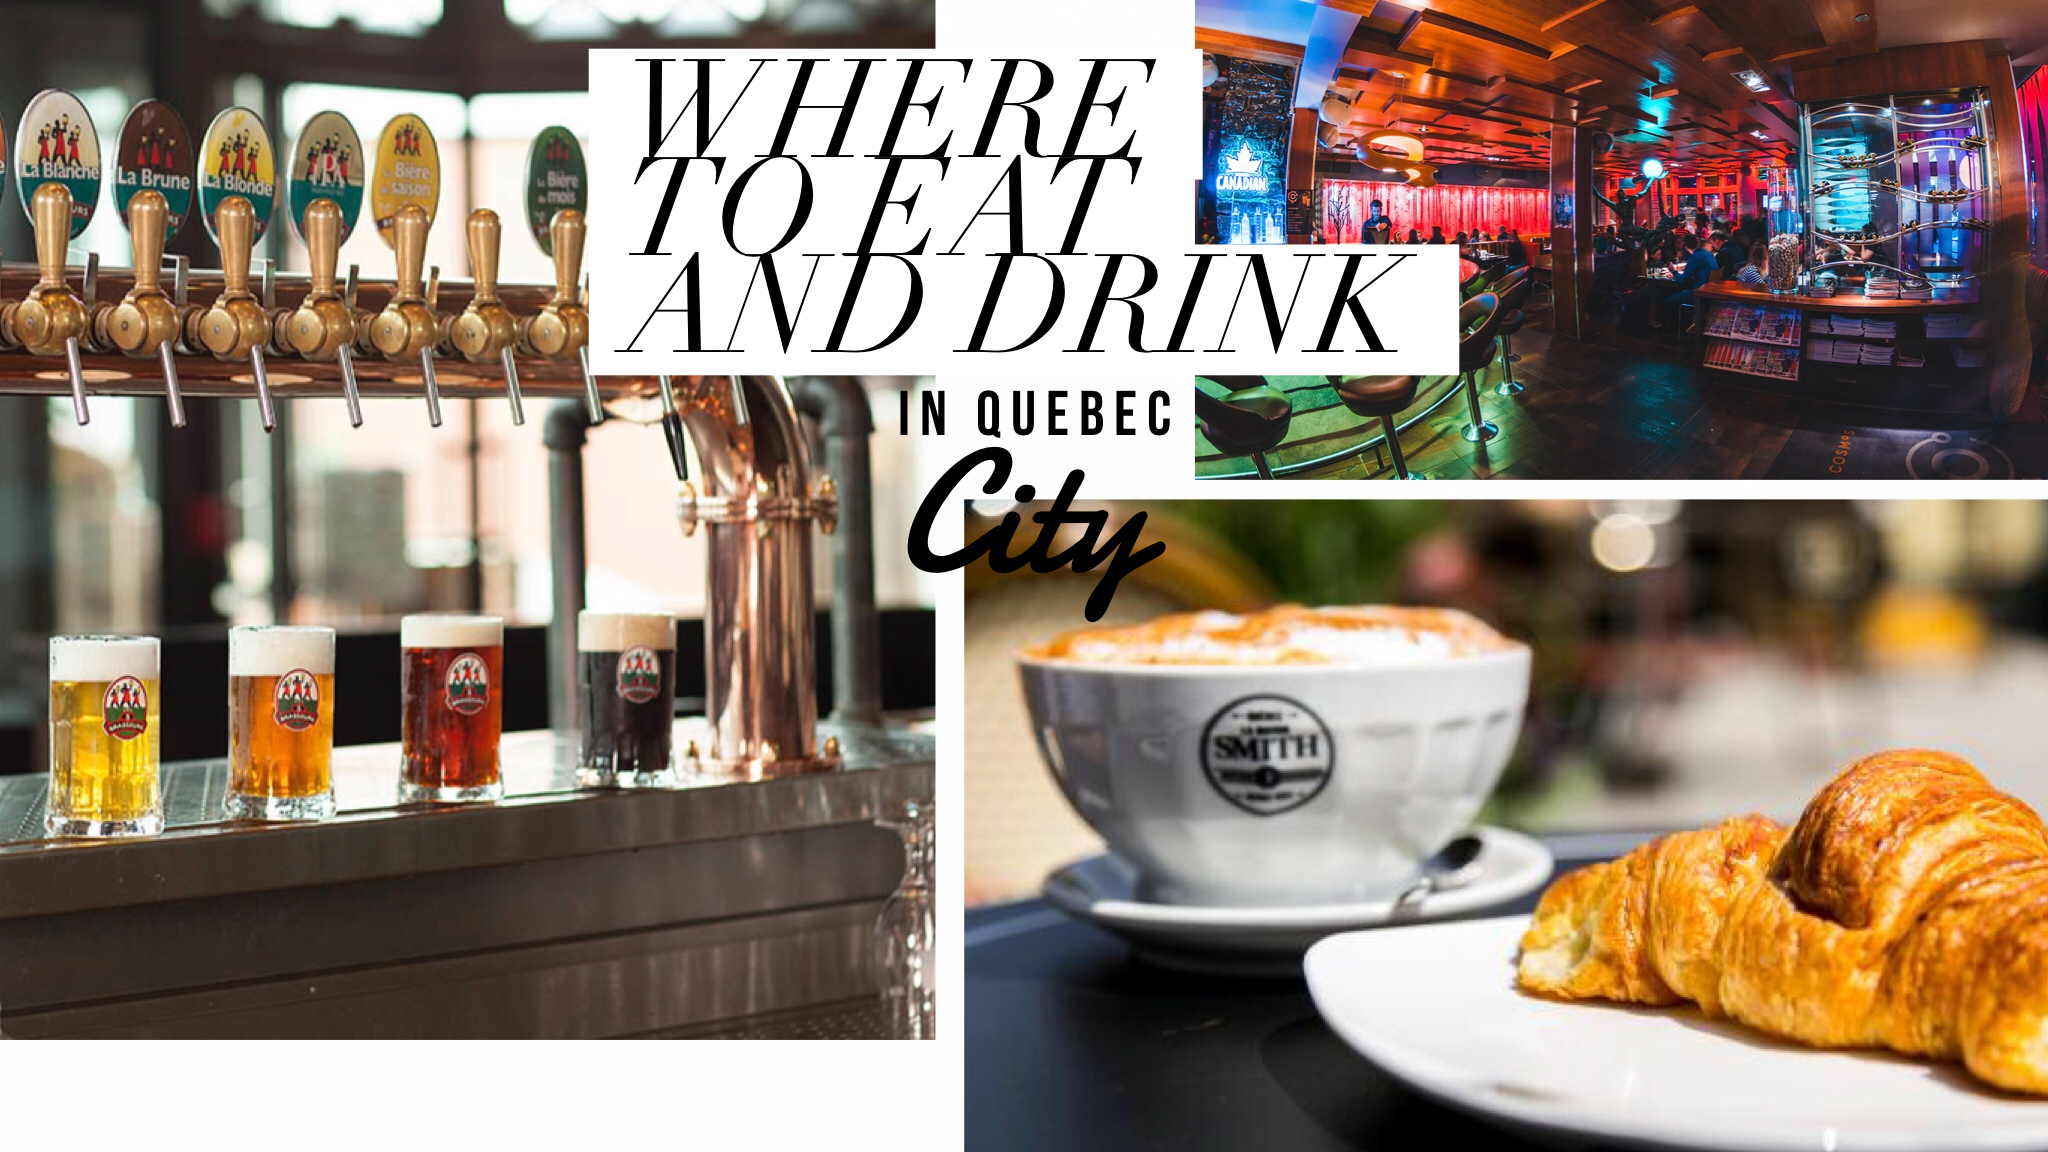 Where to Eat and Drink